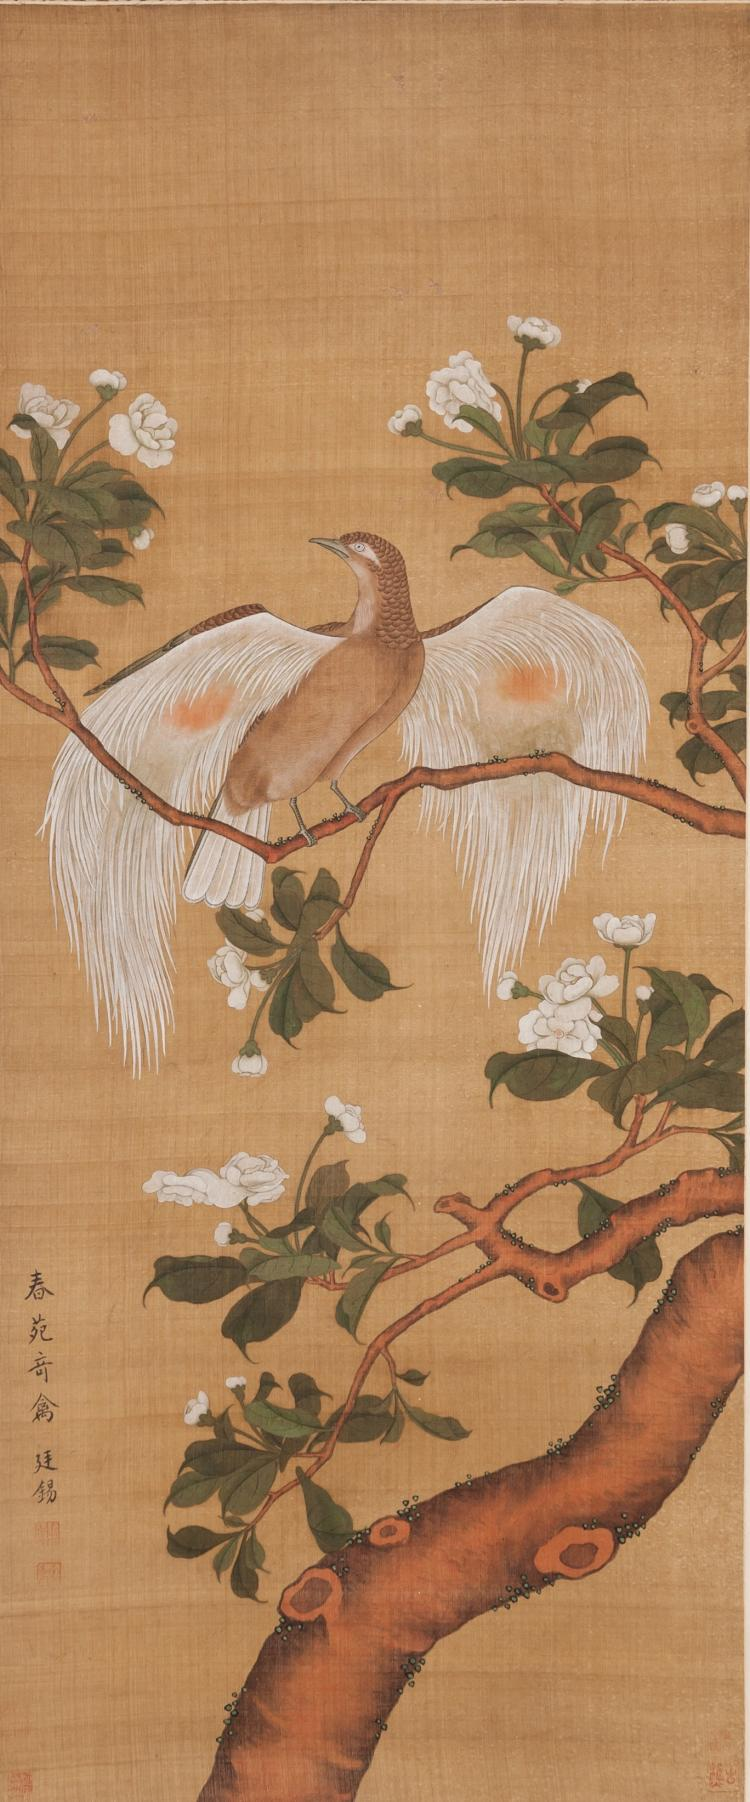 Attributed To Jiang Yanxi (1669-1732) - Ink And Color On Silk, Hanging Scroll.Signed And Seals